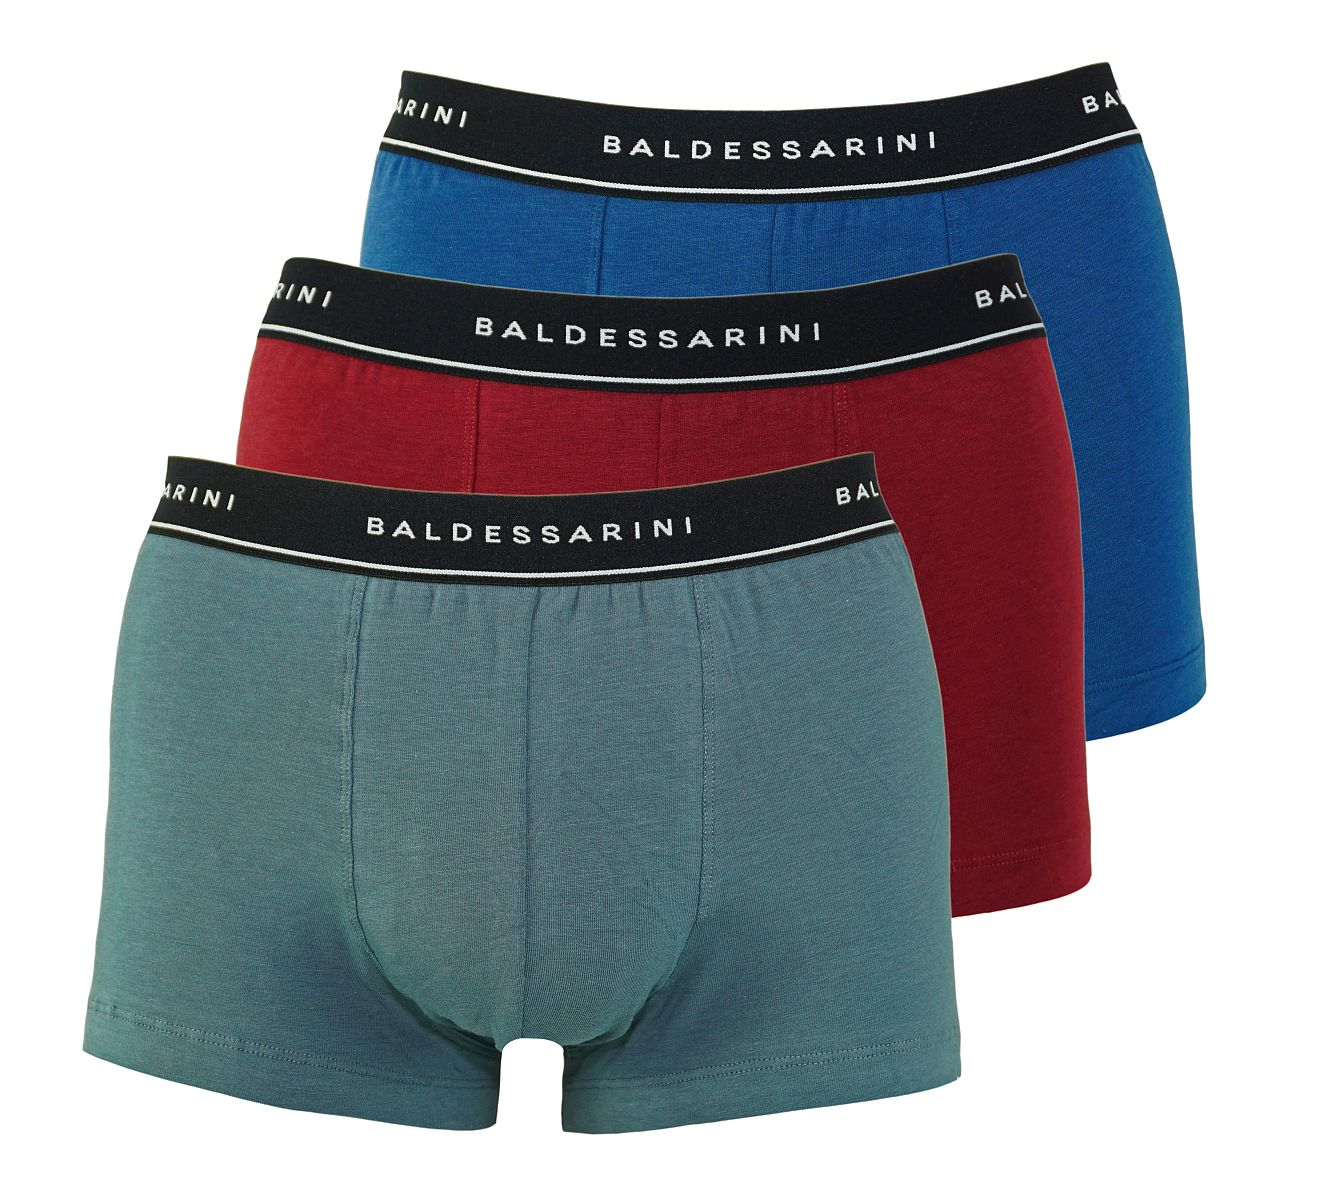 Baldessarini 3er Pack Shorts Trunks 90002 6061 420 red mediu W18-BSS1